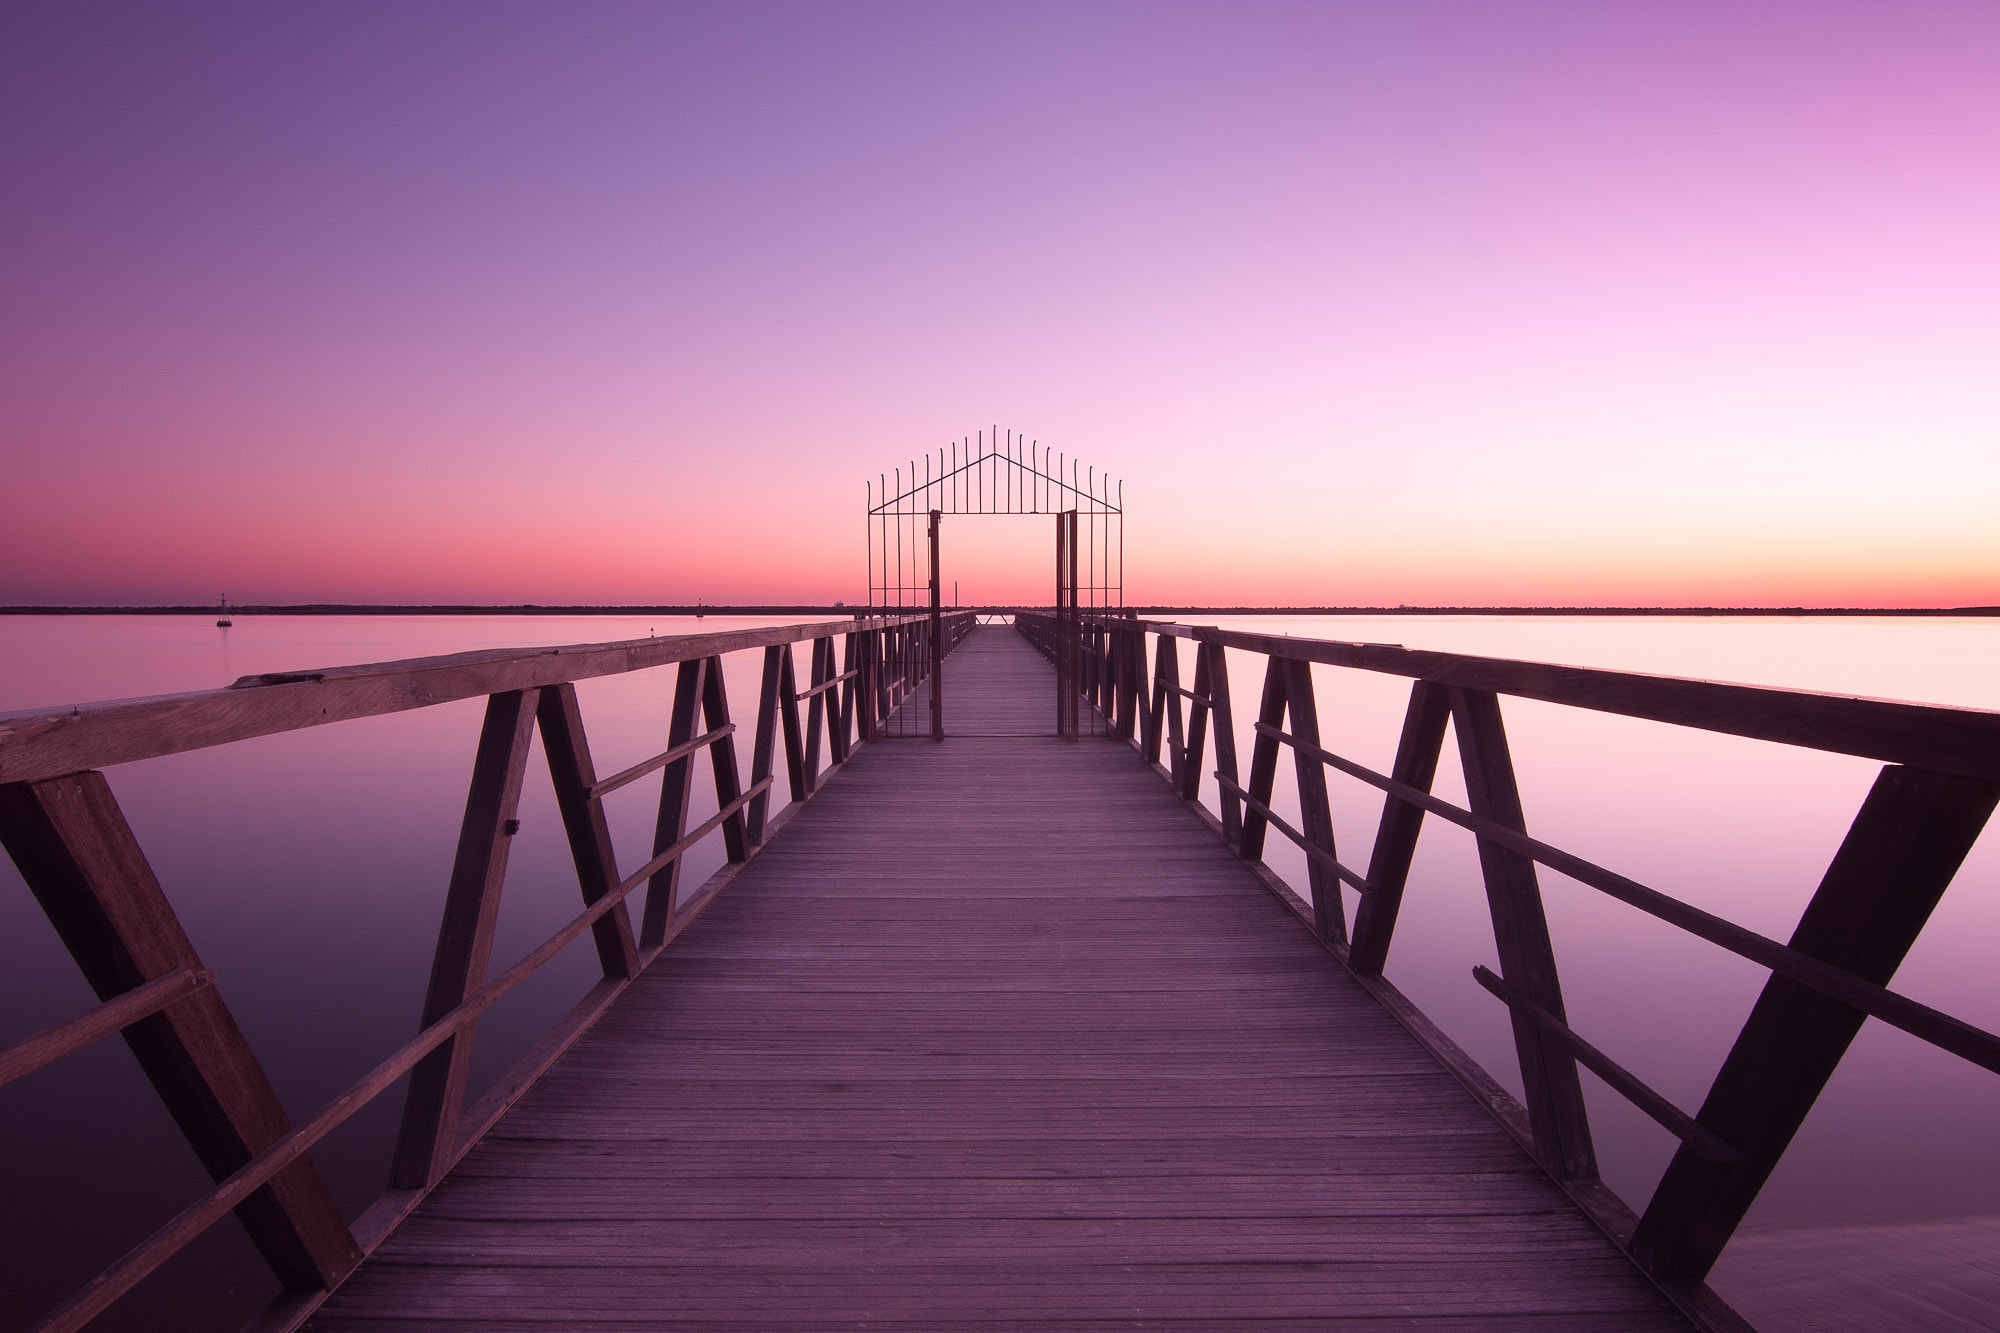 Photograph Dock by Alberto B. R. on 500px